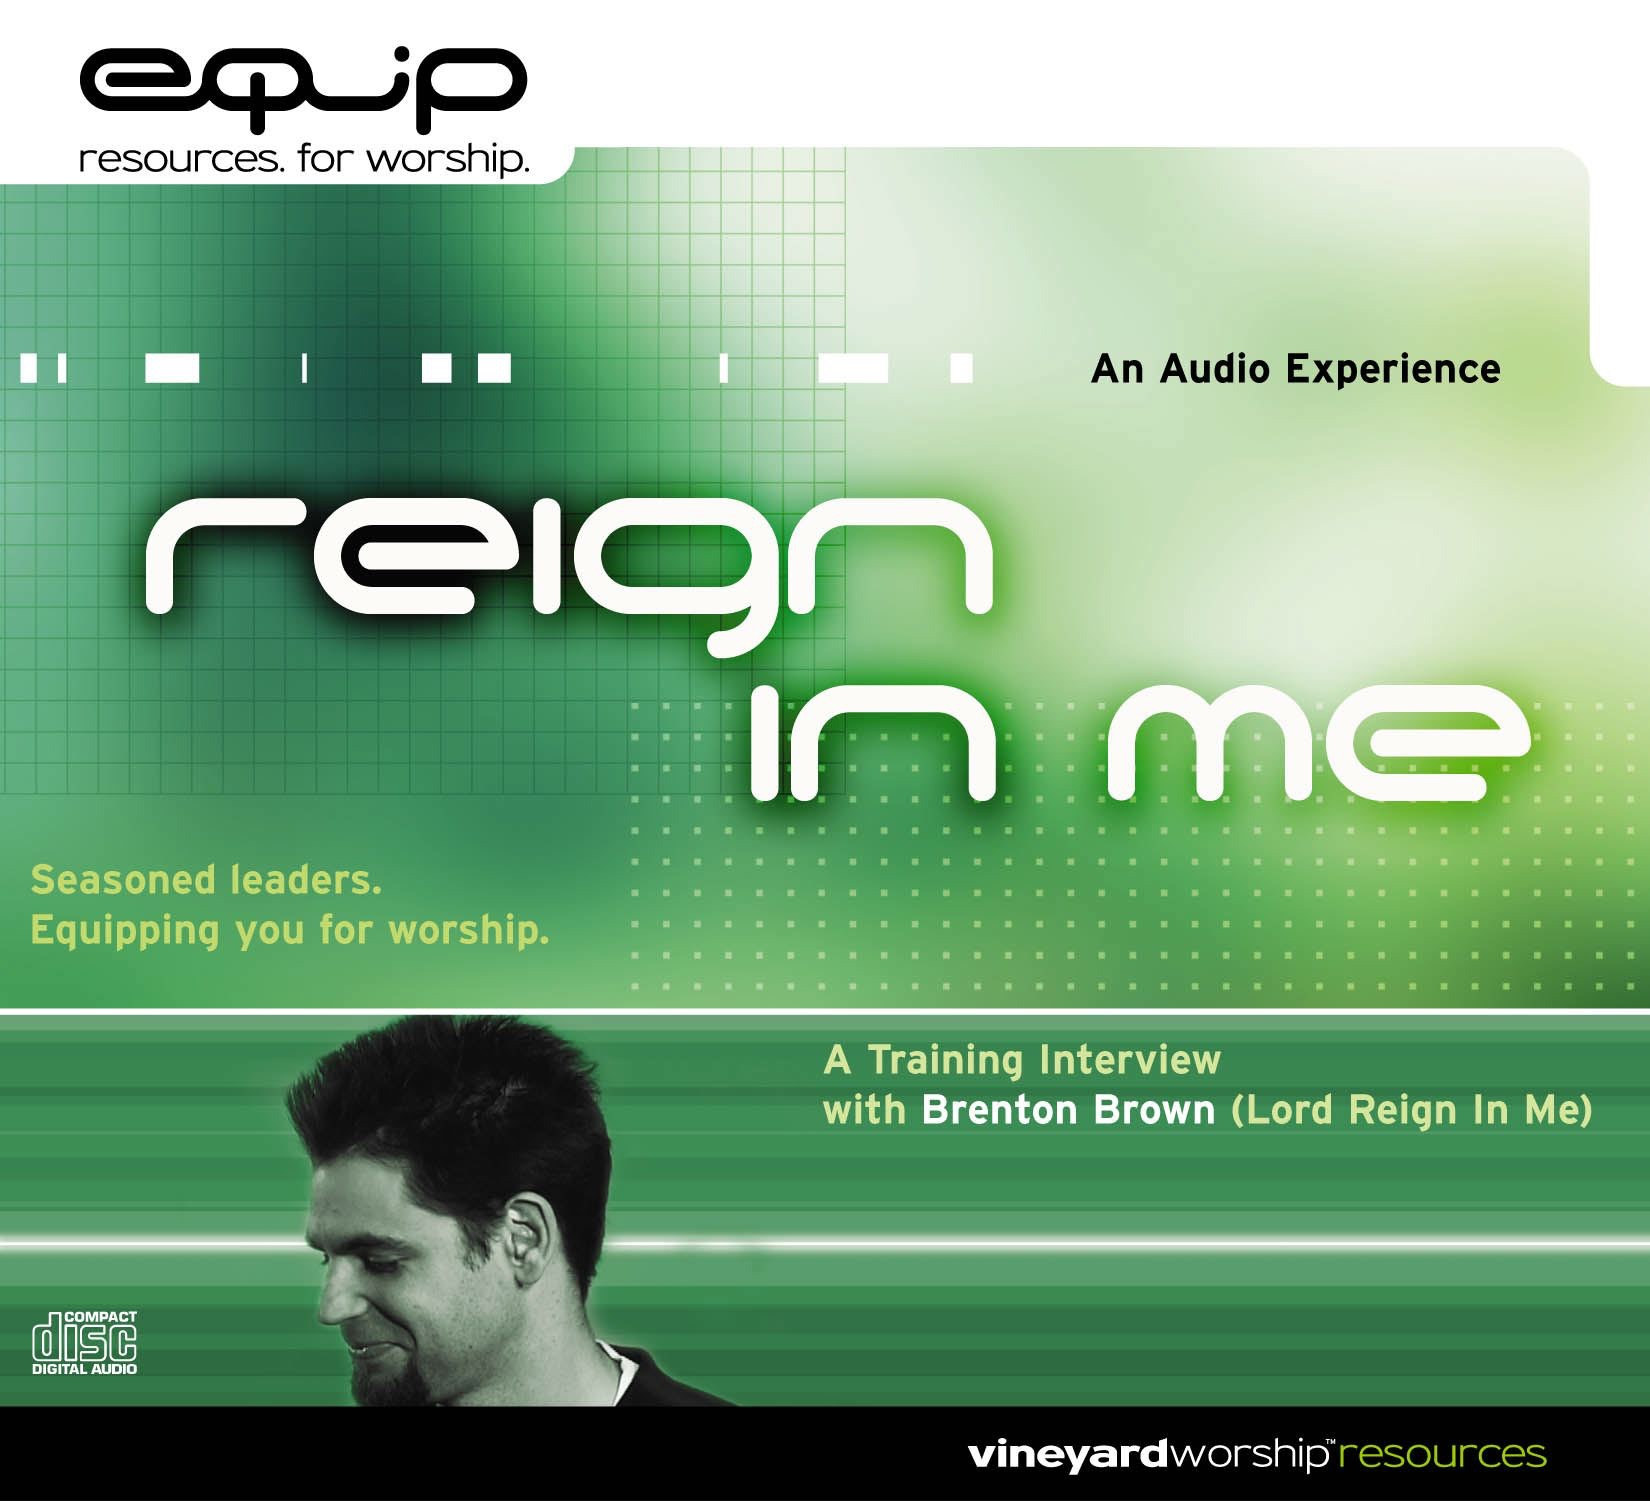 EQUIP - Reign In Me (A Training Interview With Brenton Brown)